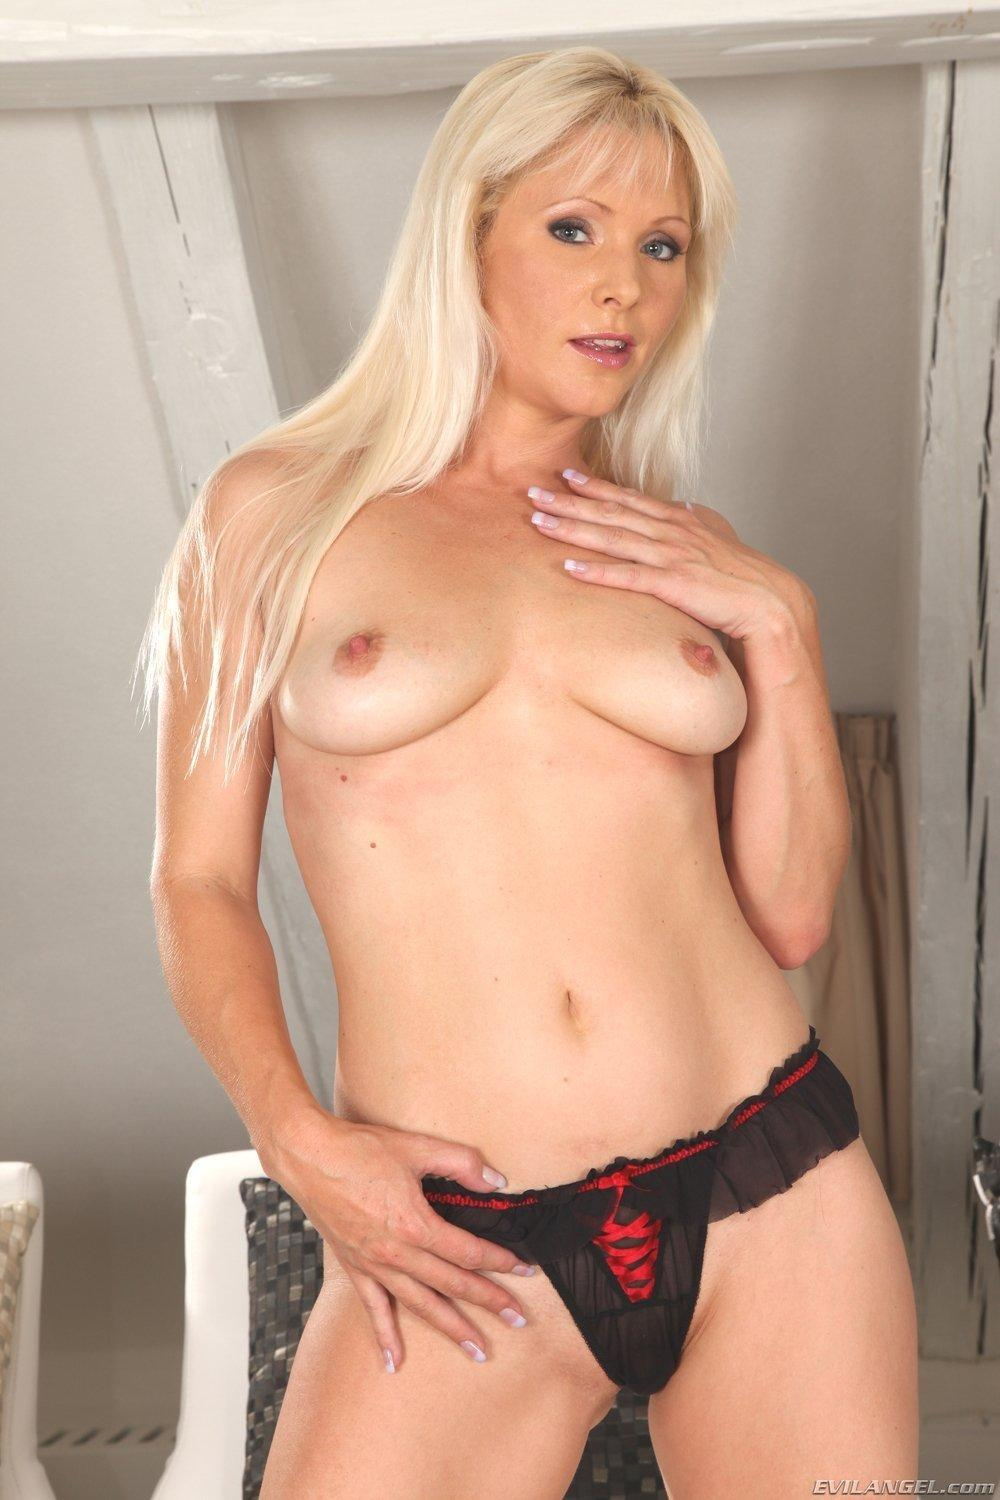 Red T. reccomend Pictures of pornstar kathy anderson